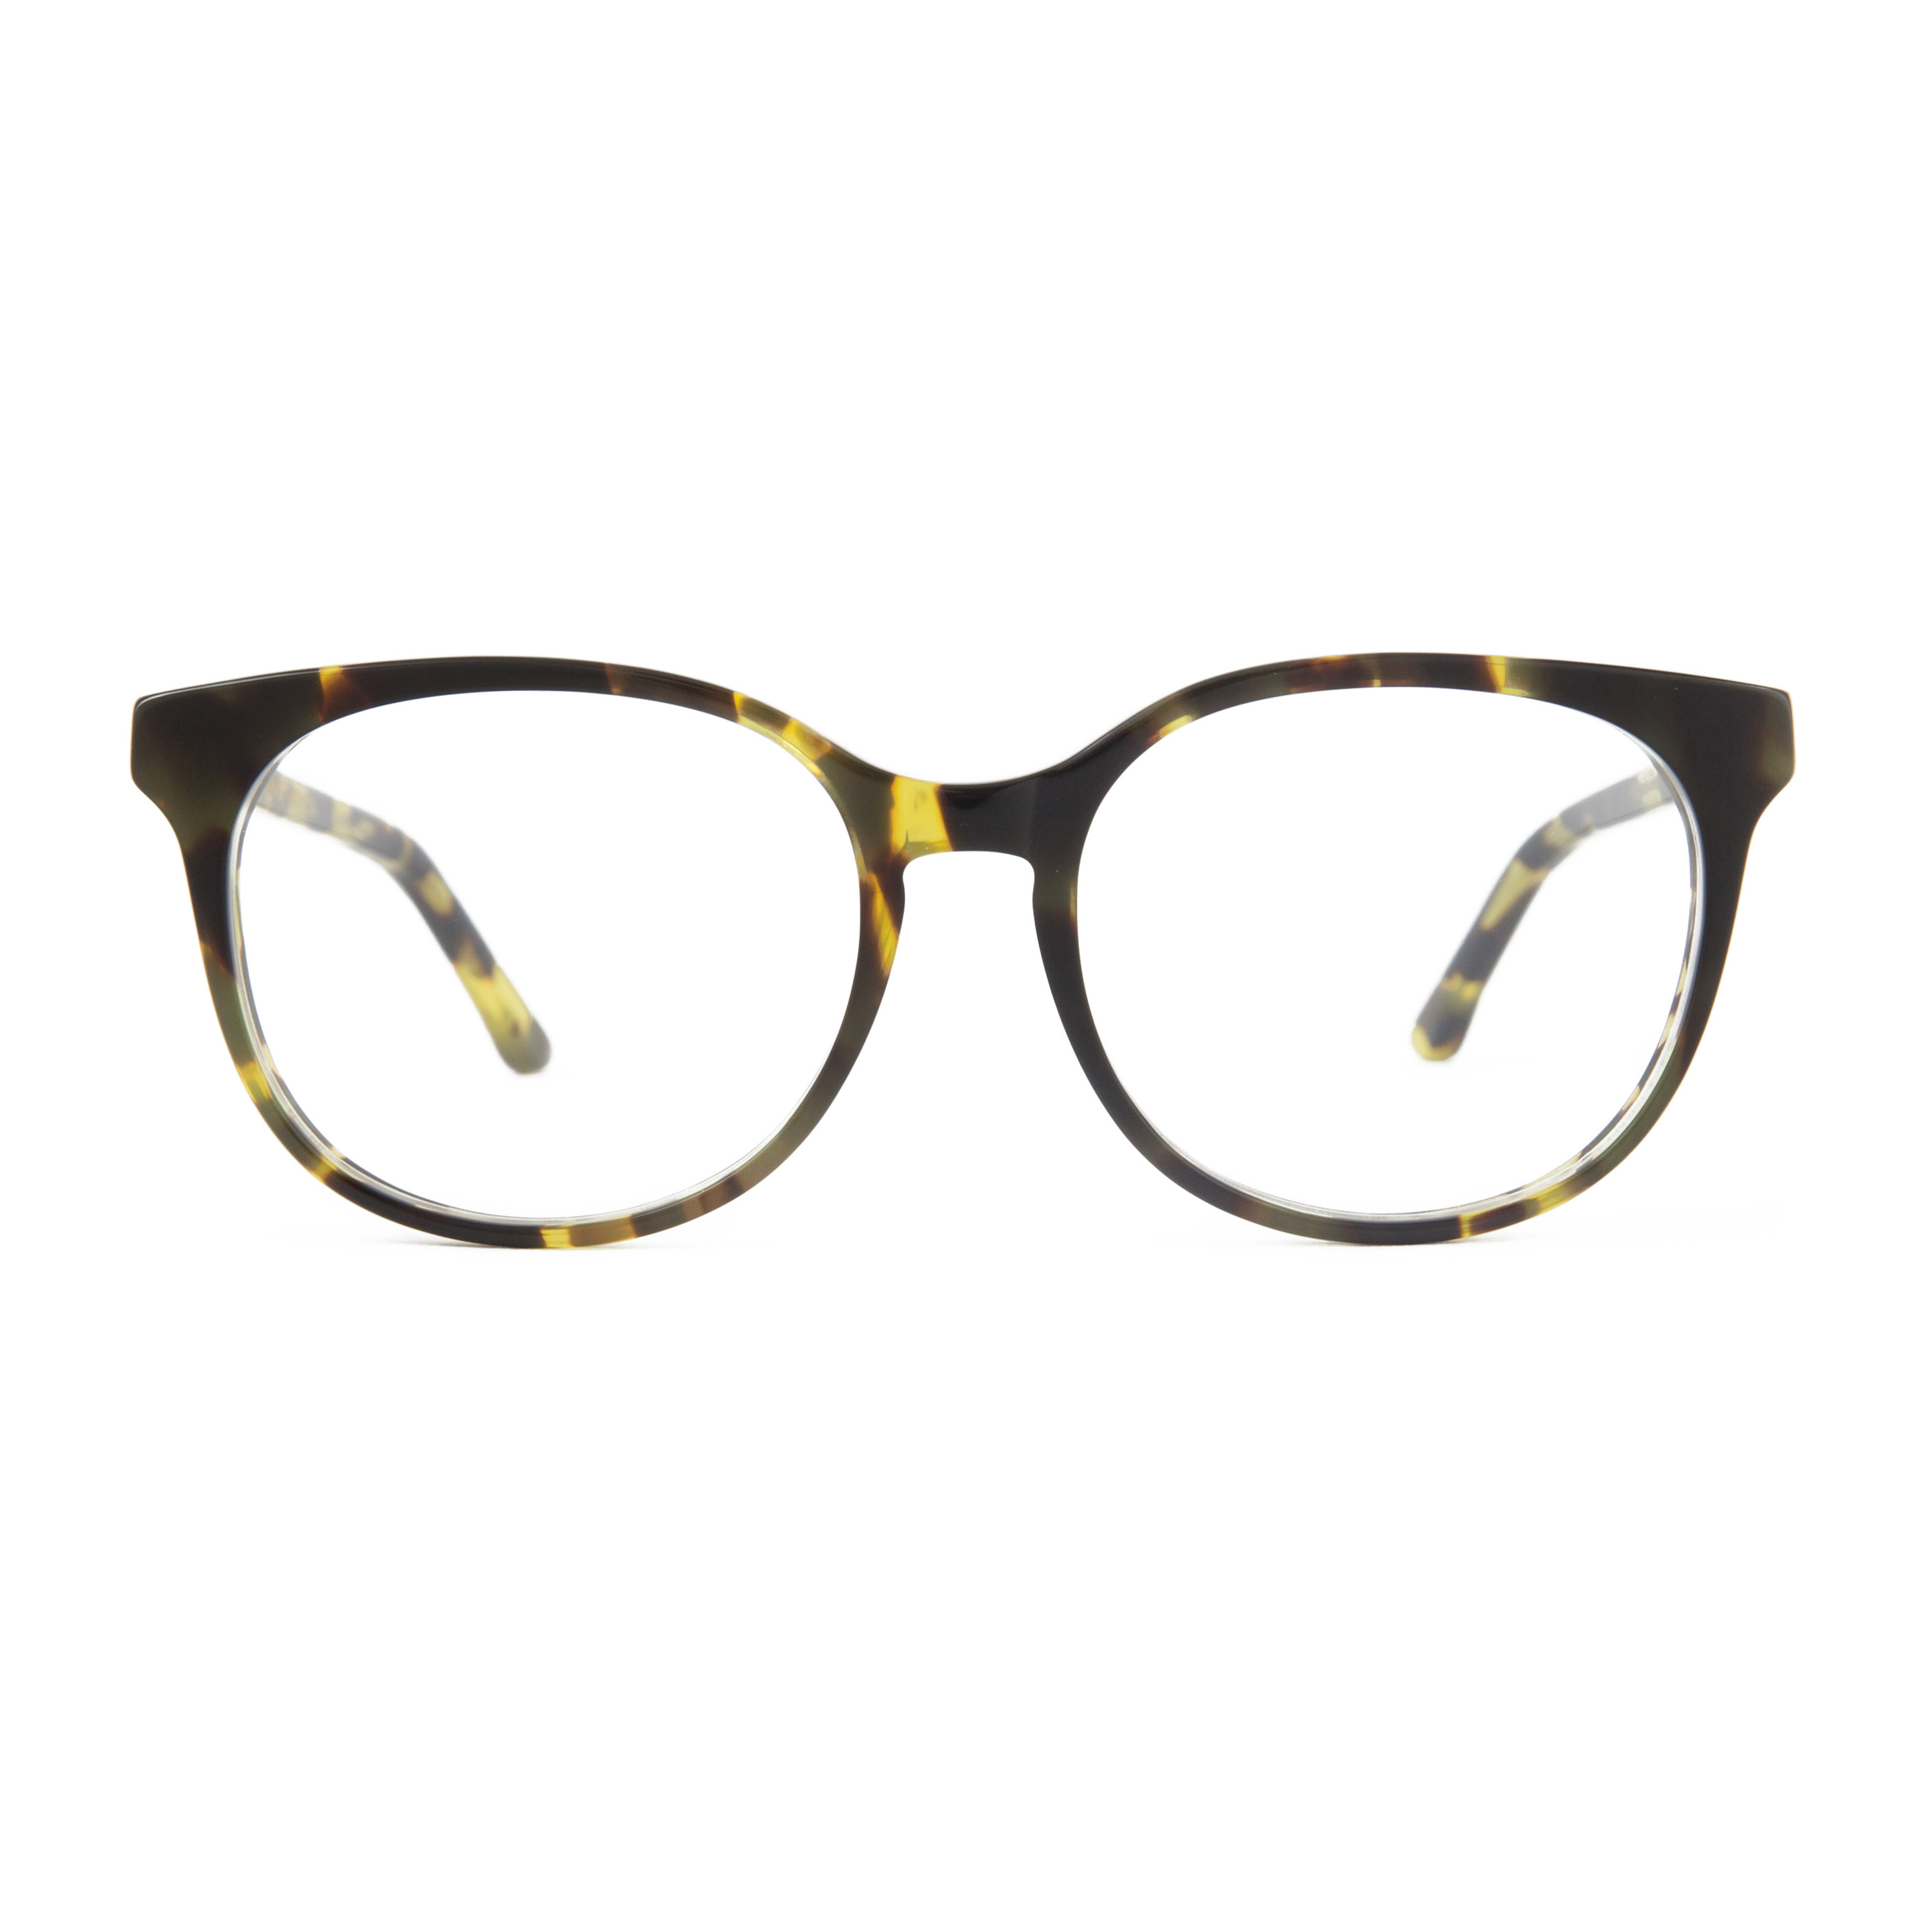 Lead + Ball, Campania Editions clear lens frames, was £75 now £37.50